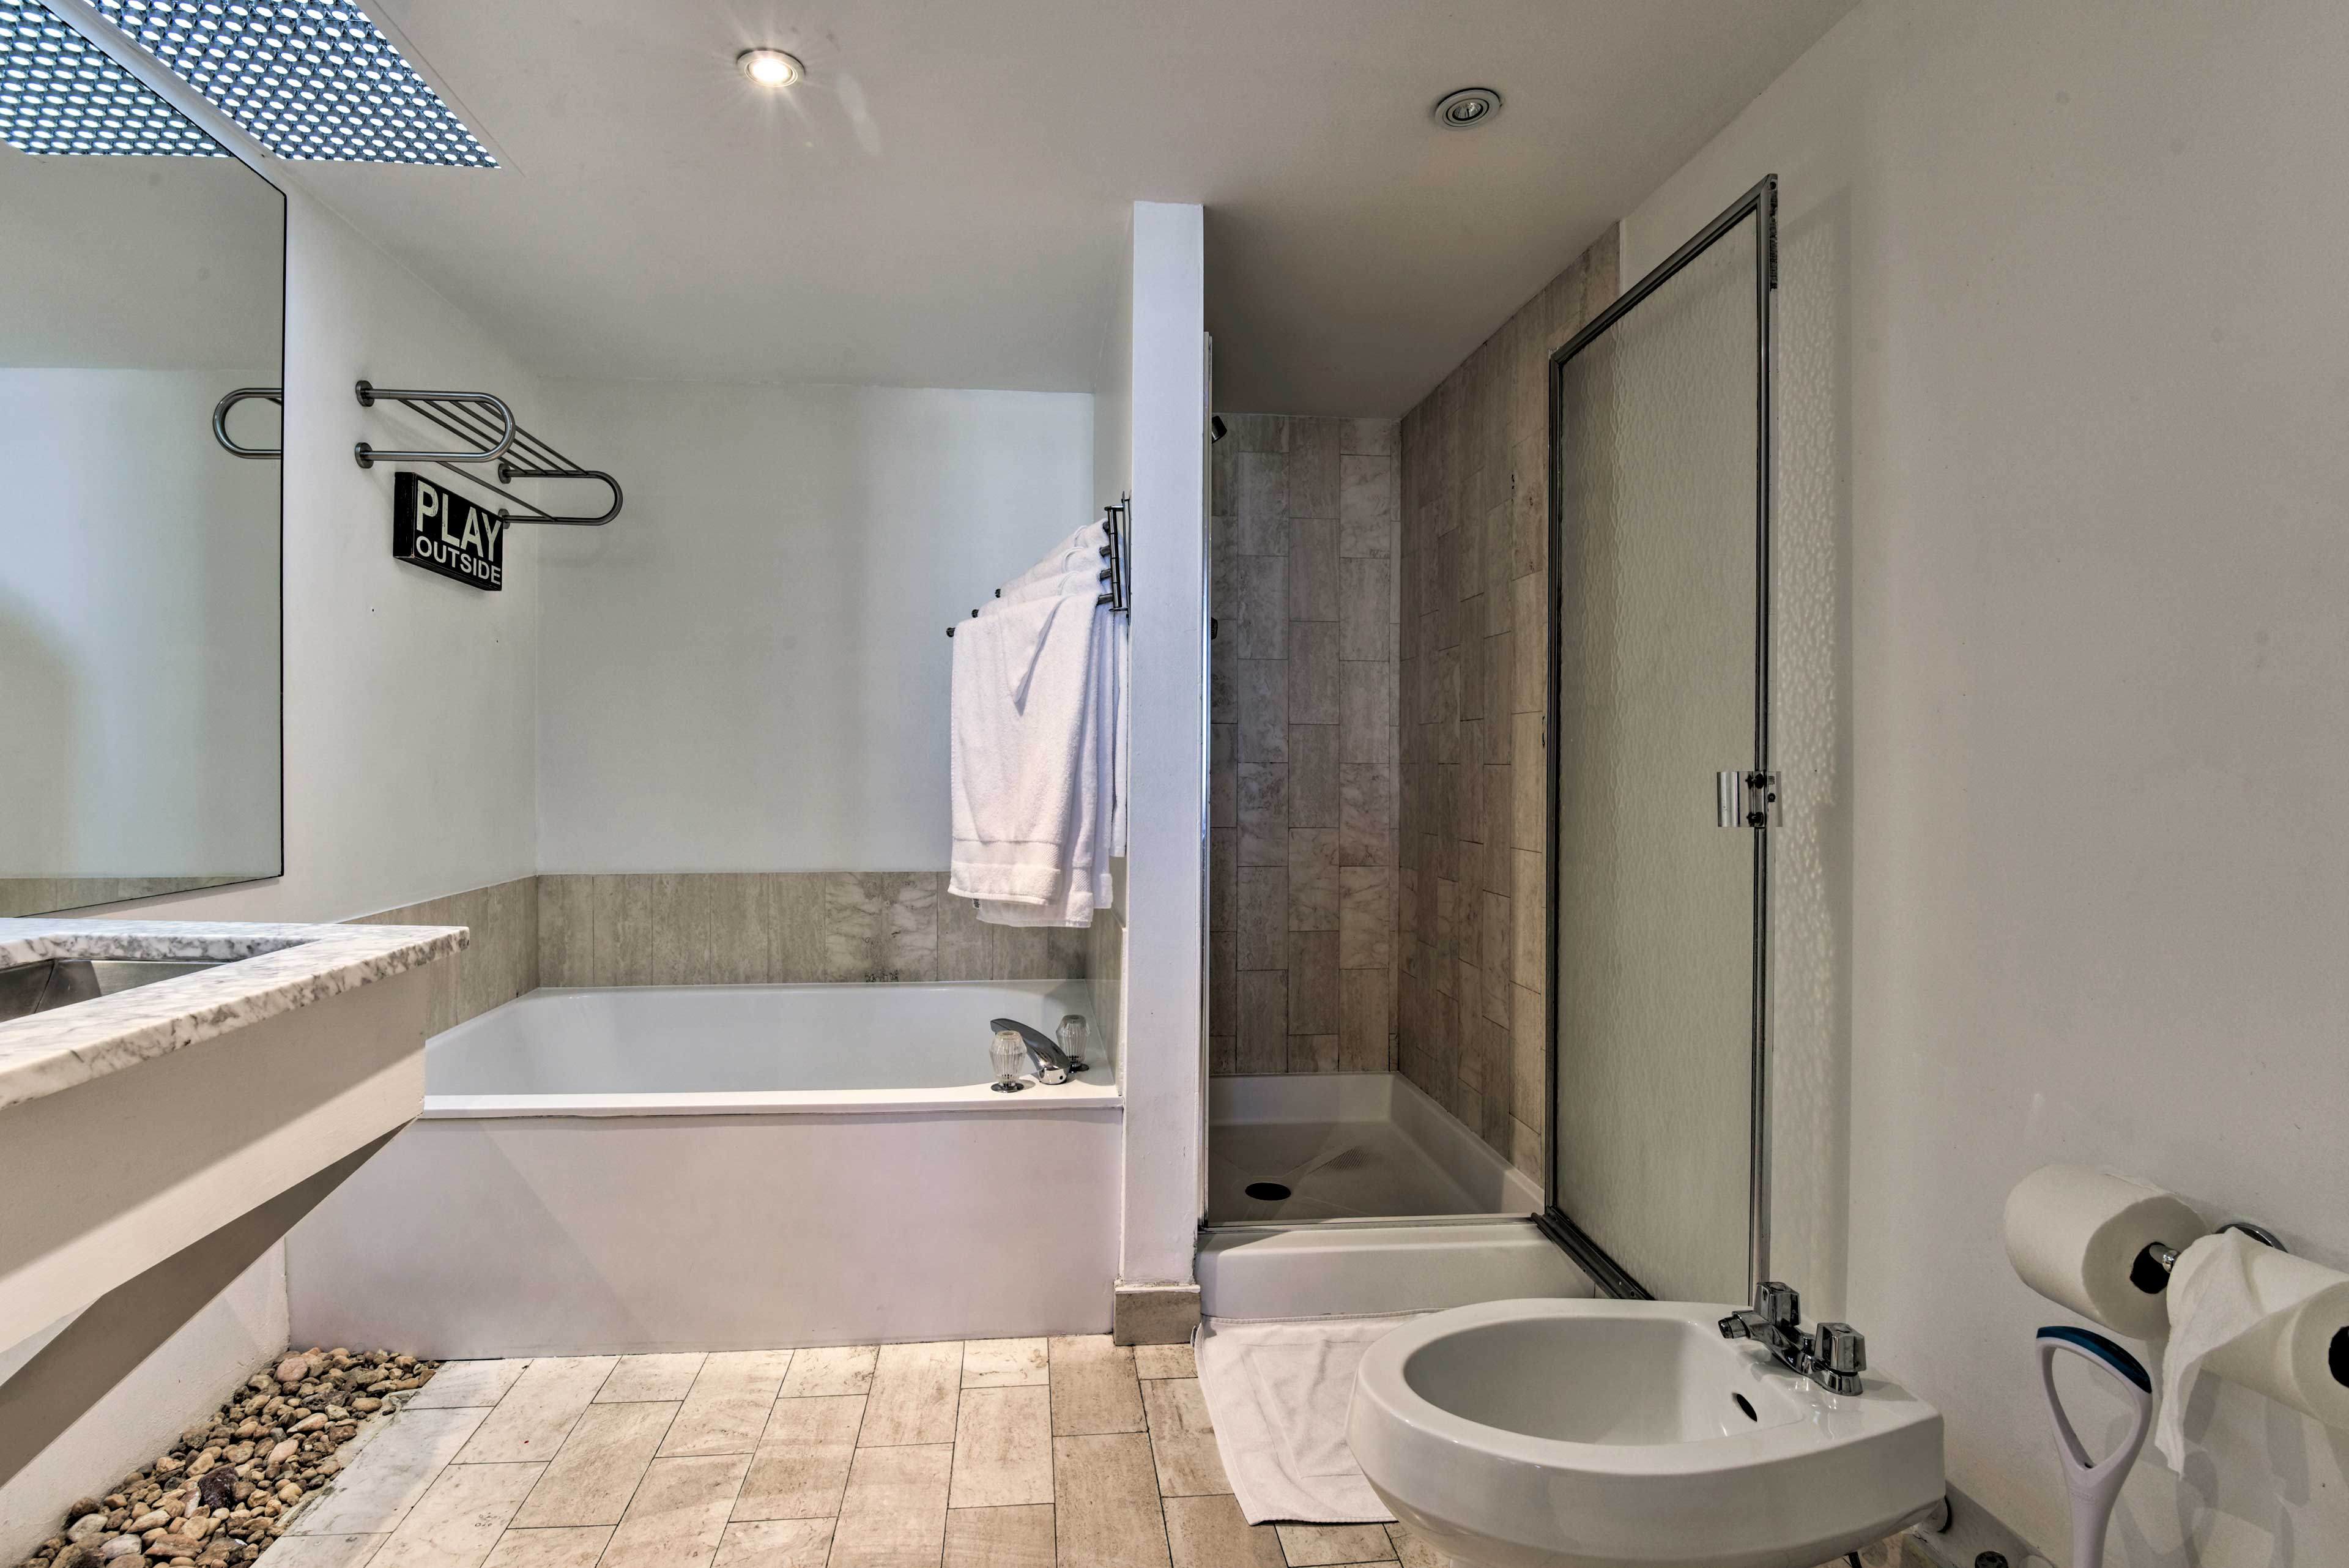 Rinse off in the large bathing tub or the stand-up shower.